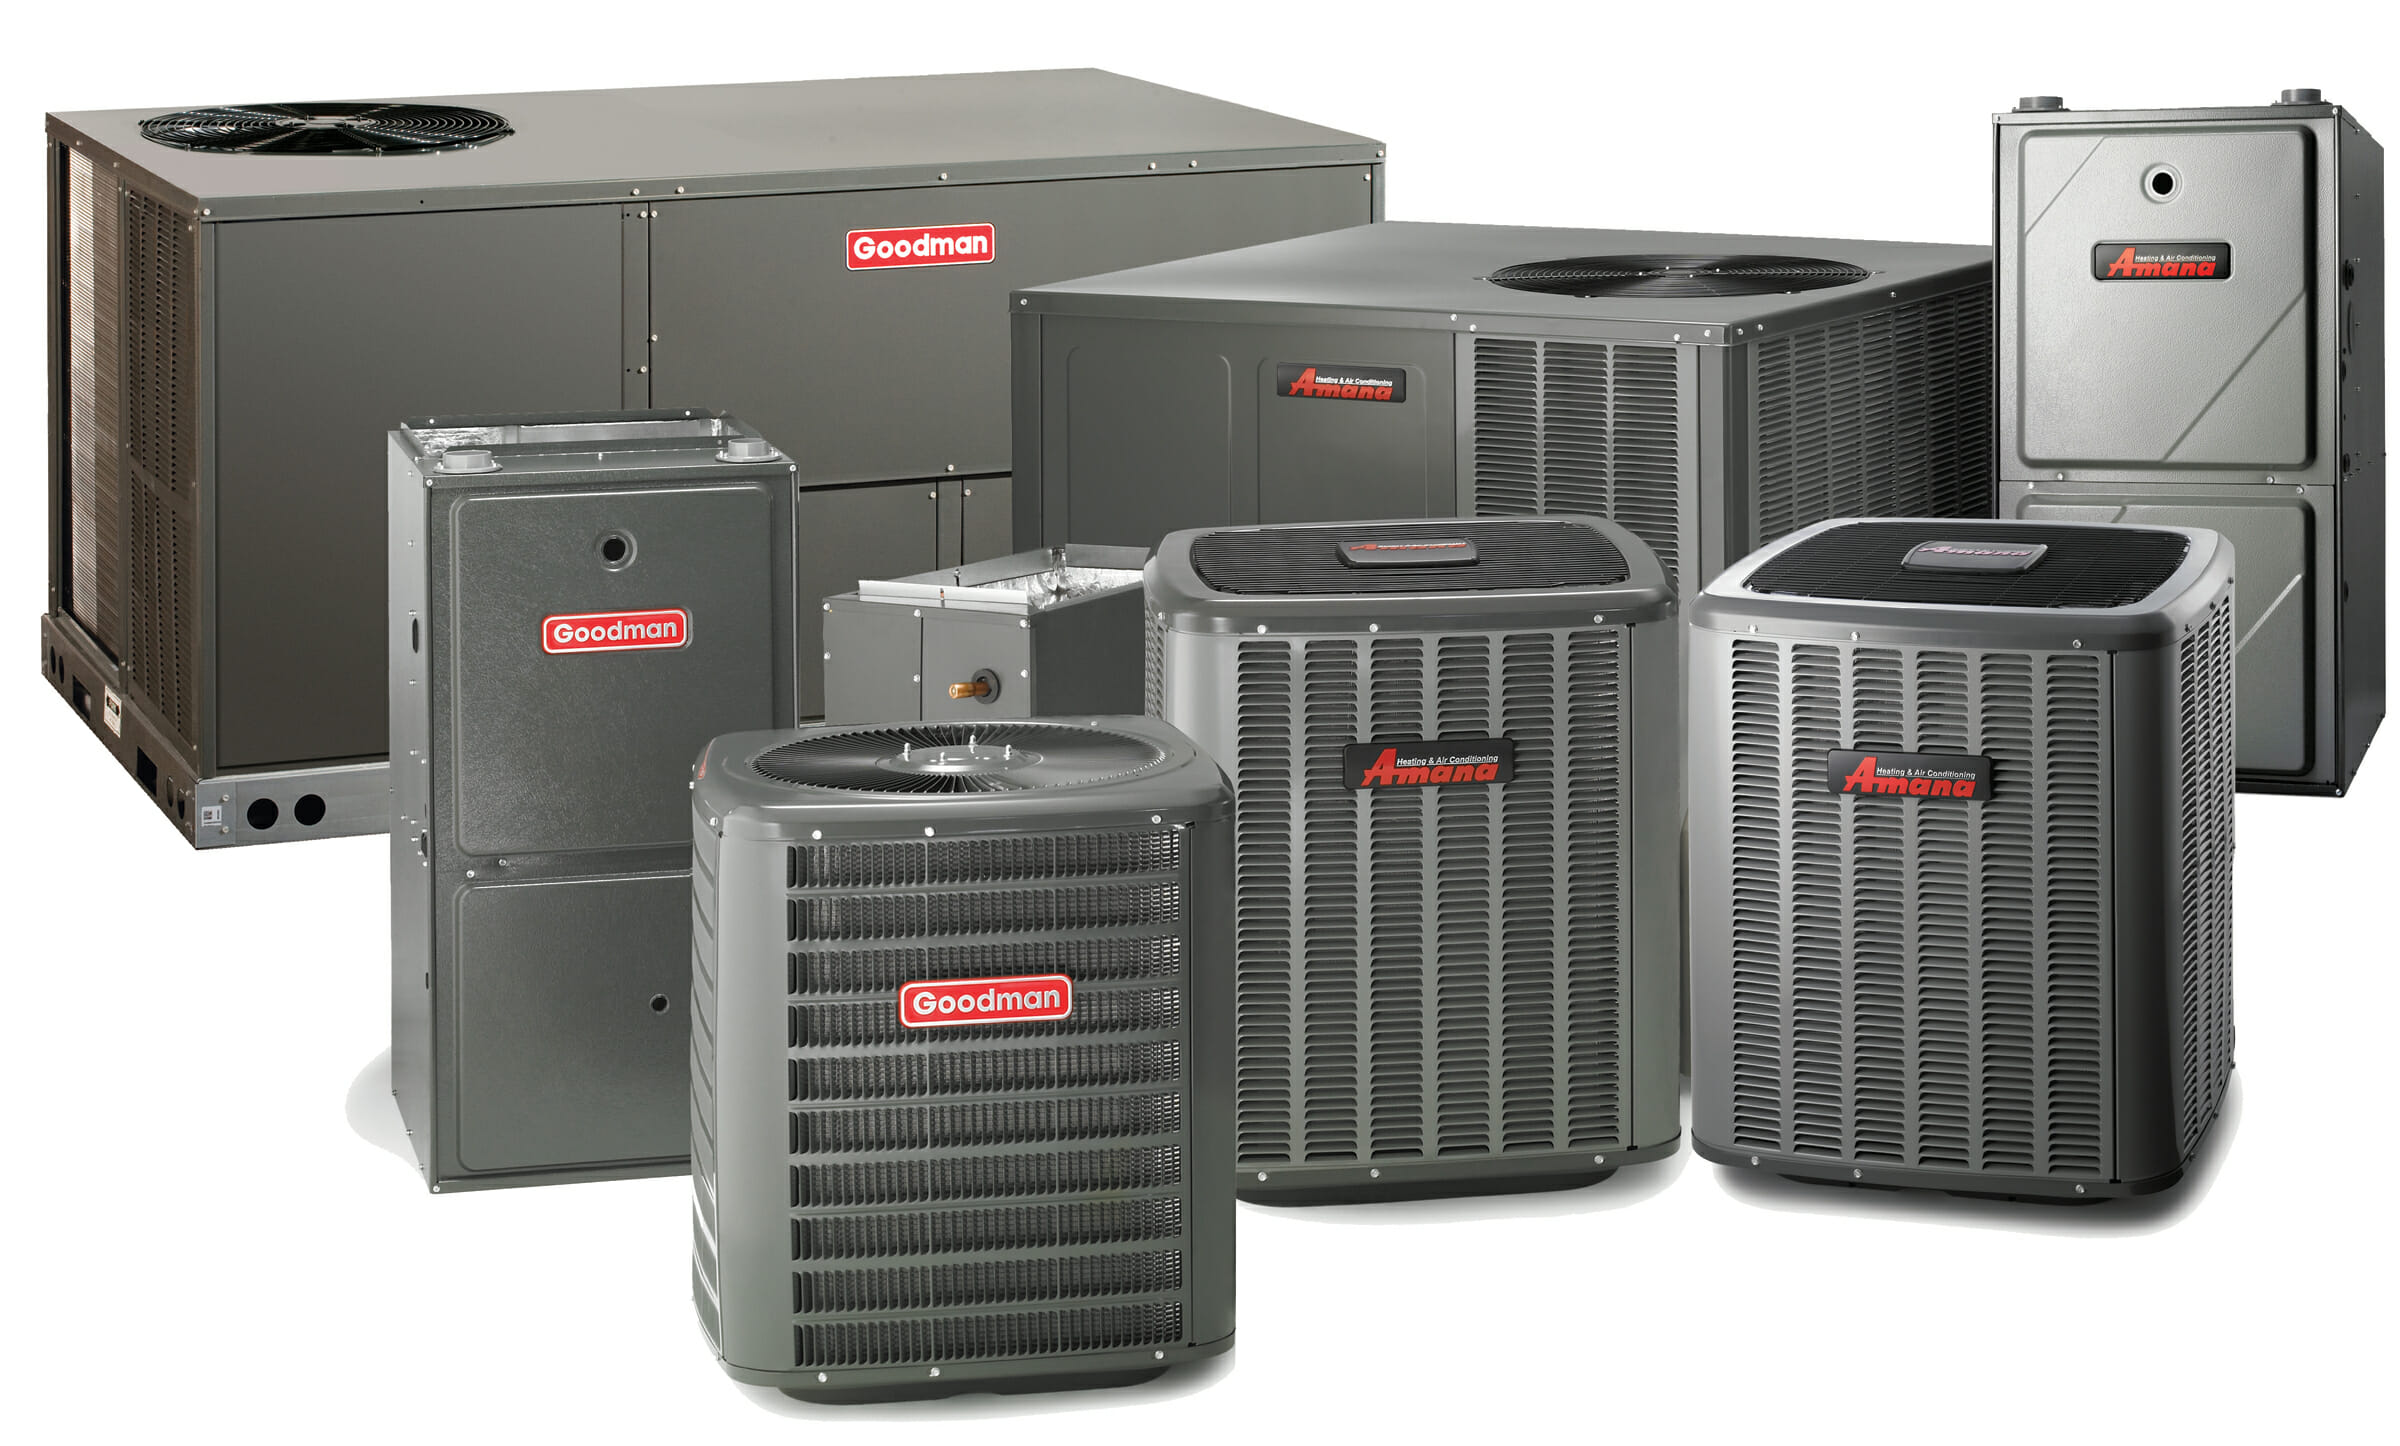 goodman gas furnace prices. goodman gas furnace prices